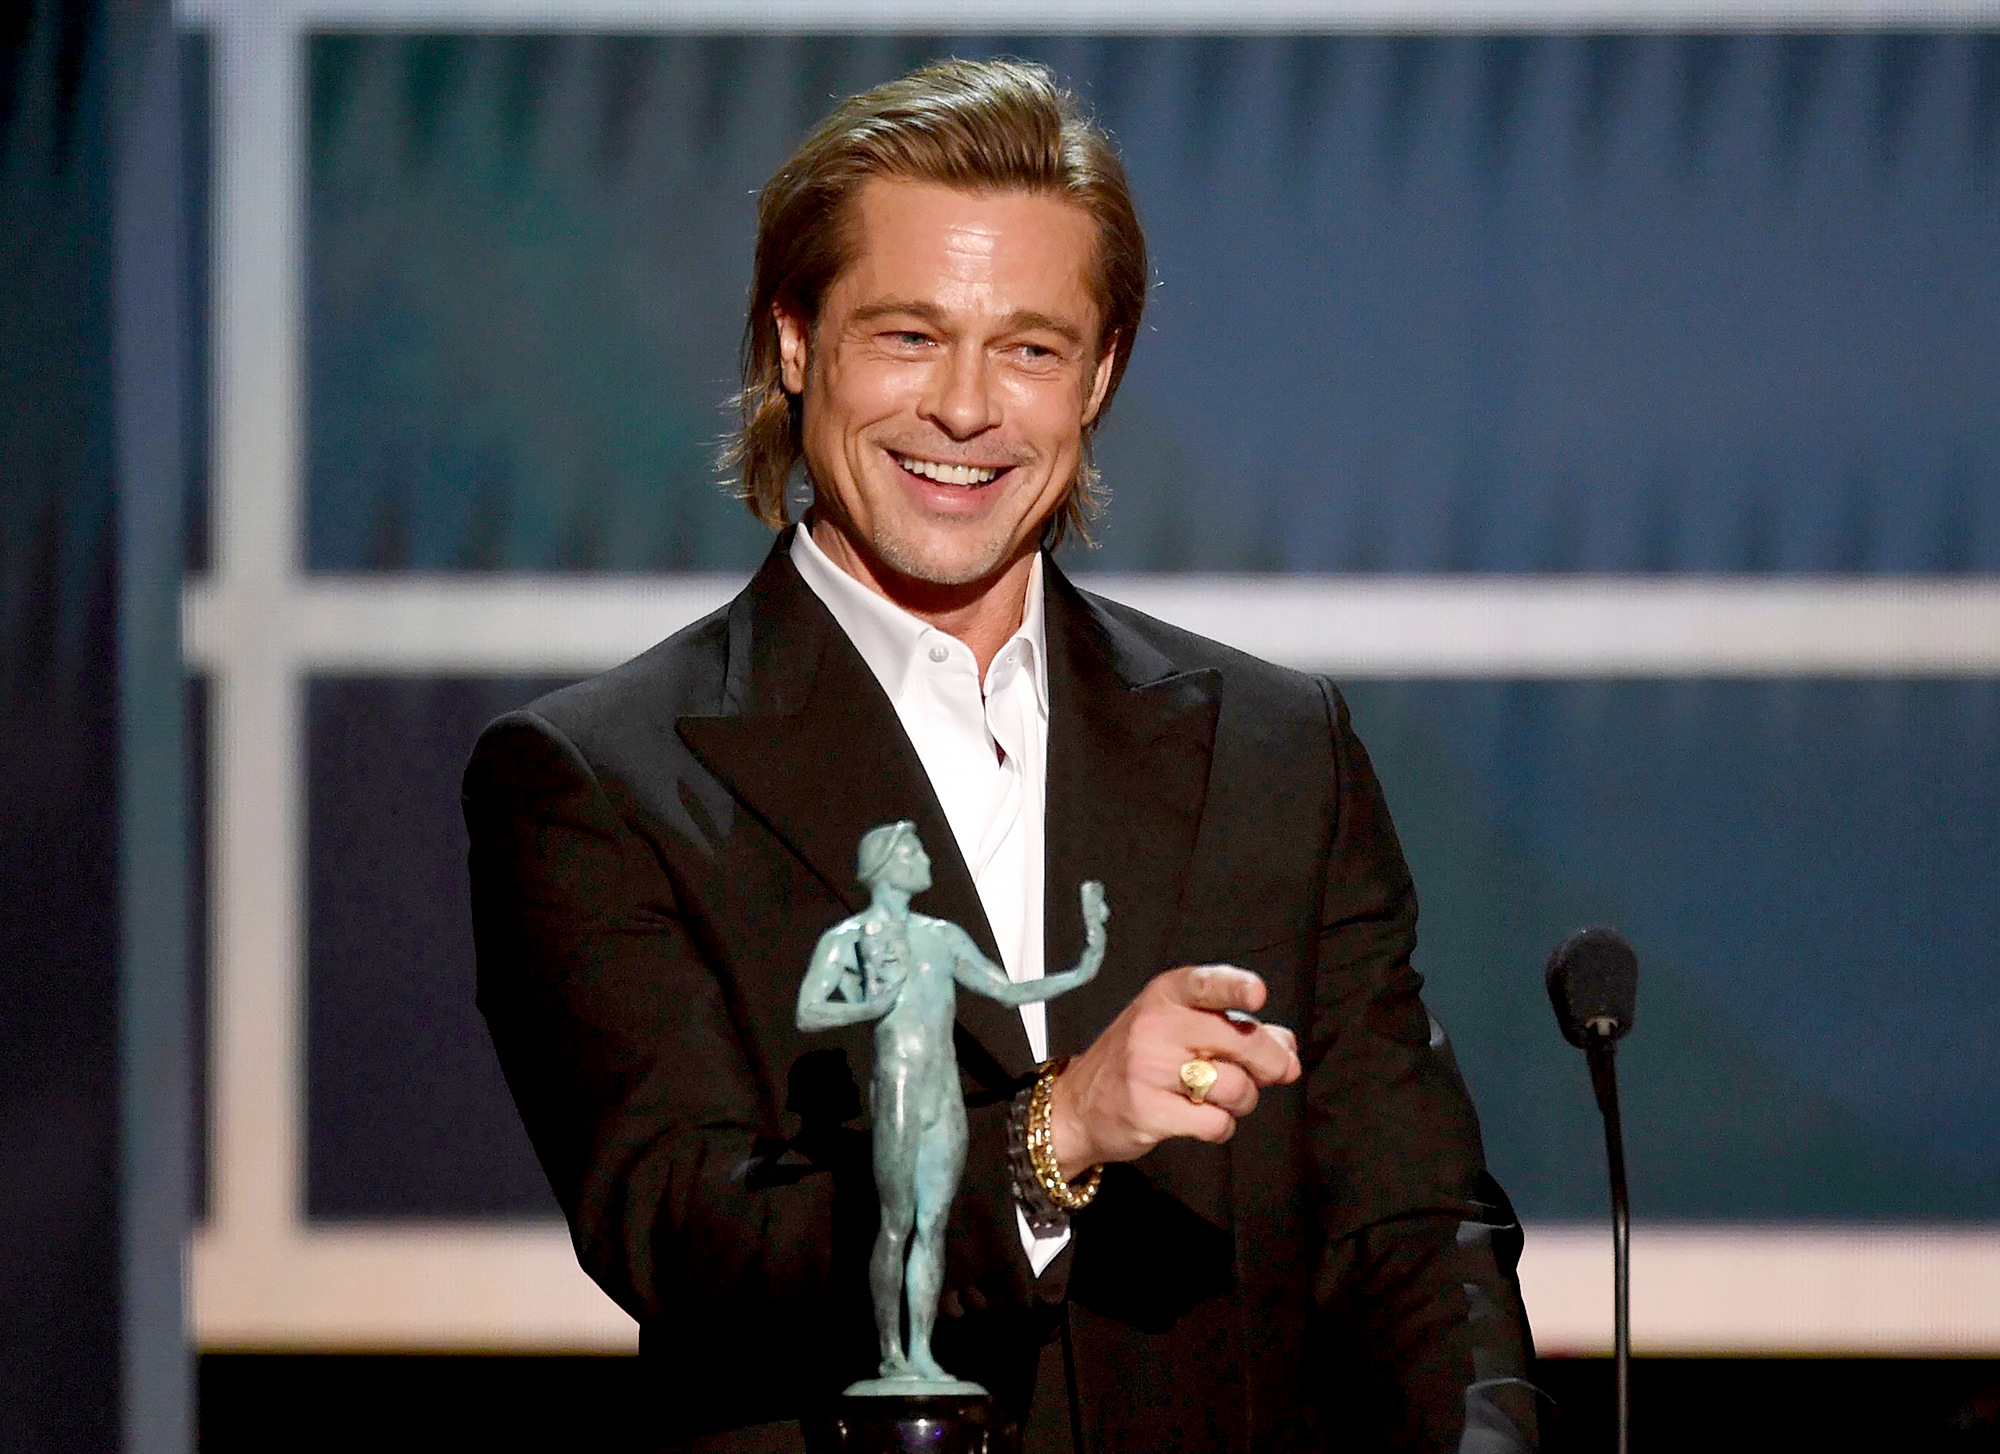 Brad Pitt Wants to Add His SAGs Win to His Tinder Profile